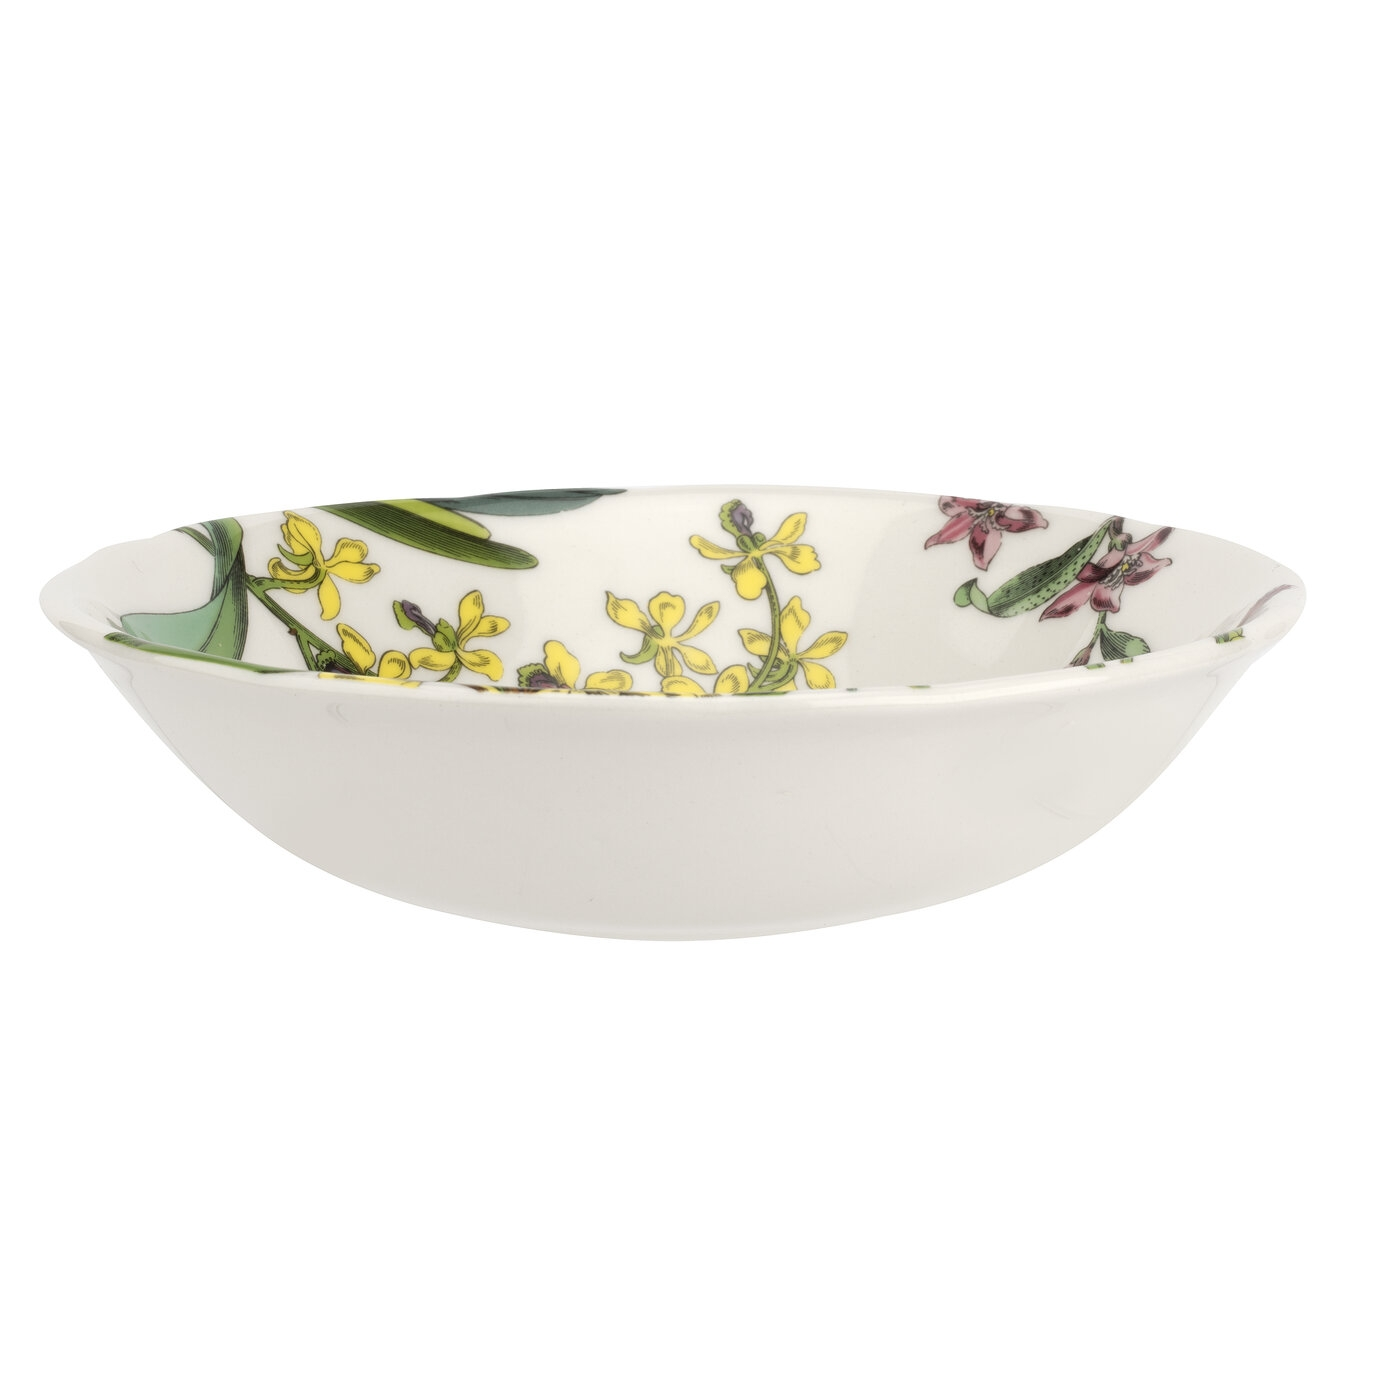 Spode Stafford Blooms 7 Inch Cereal Bowl image number 0